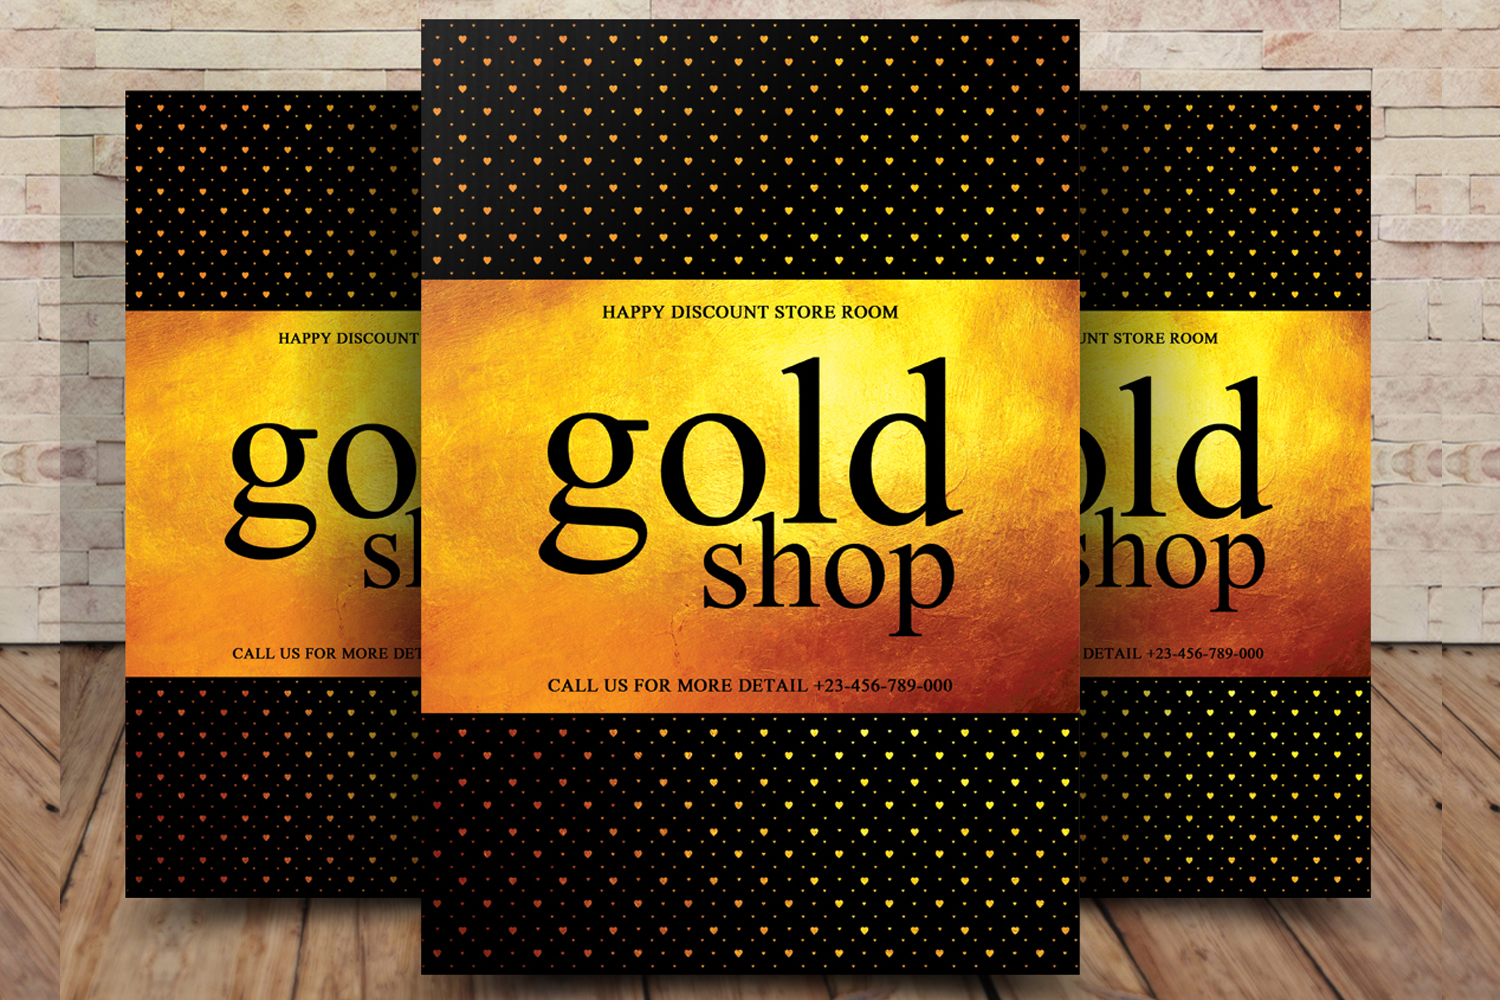 Gold Shop Flyer example image 1